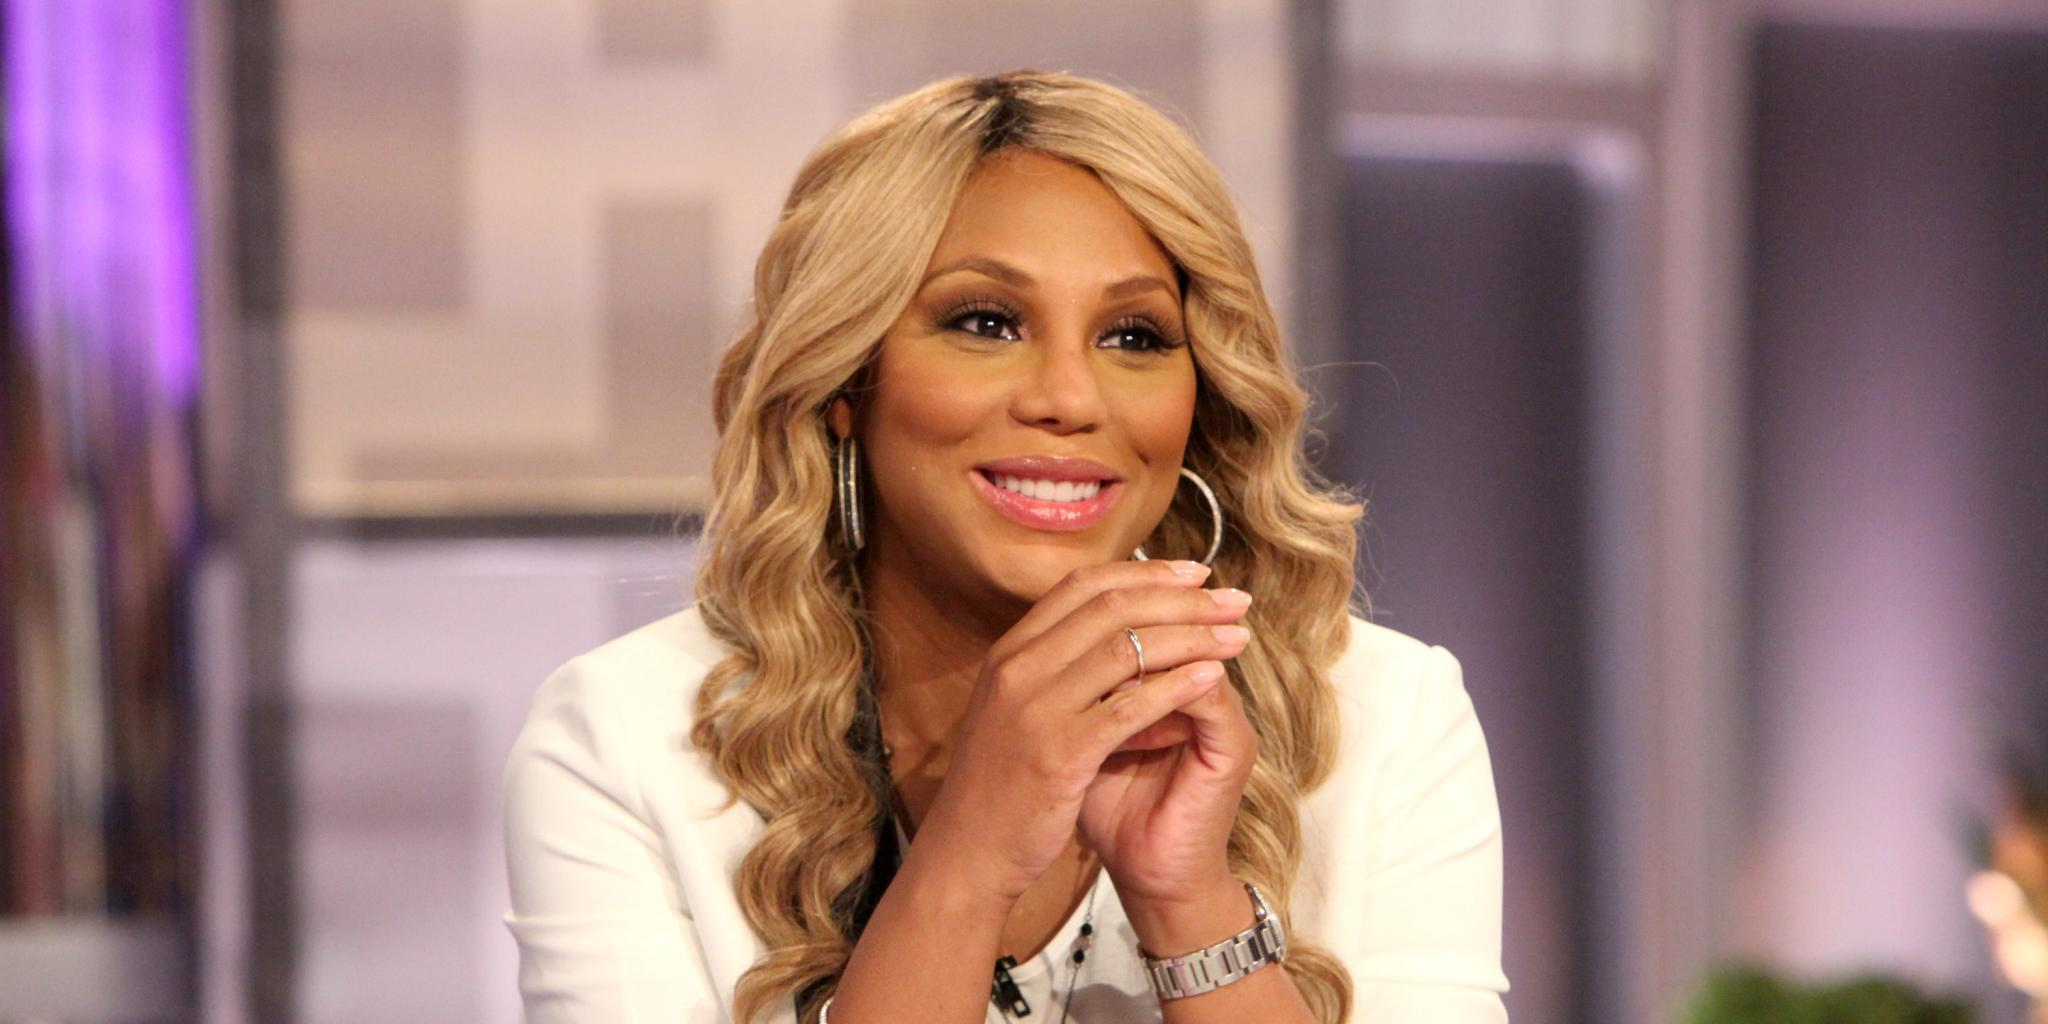 Tamar Braxton Triggers Mixed Reactions Form Fans With Her Latest Message With Biblical Connotations - See The Video